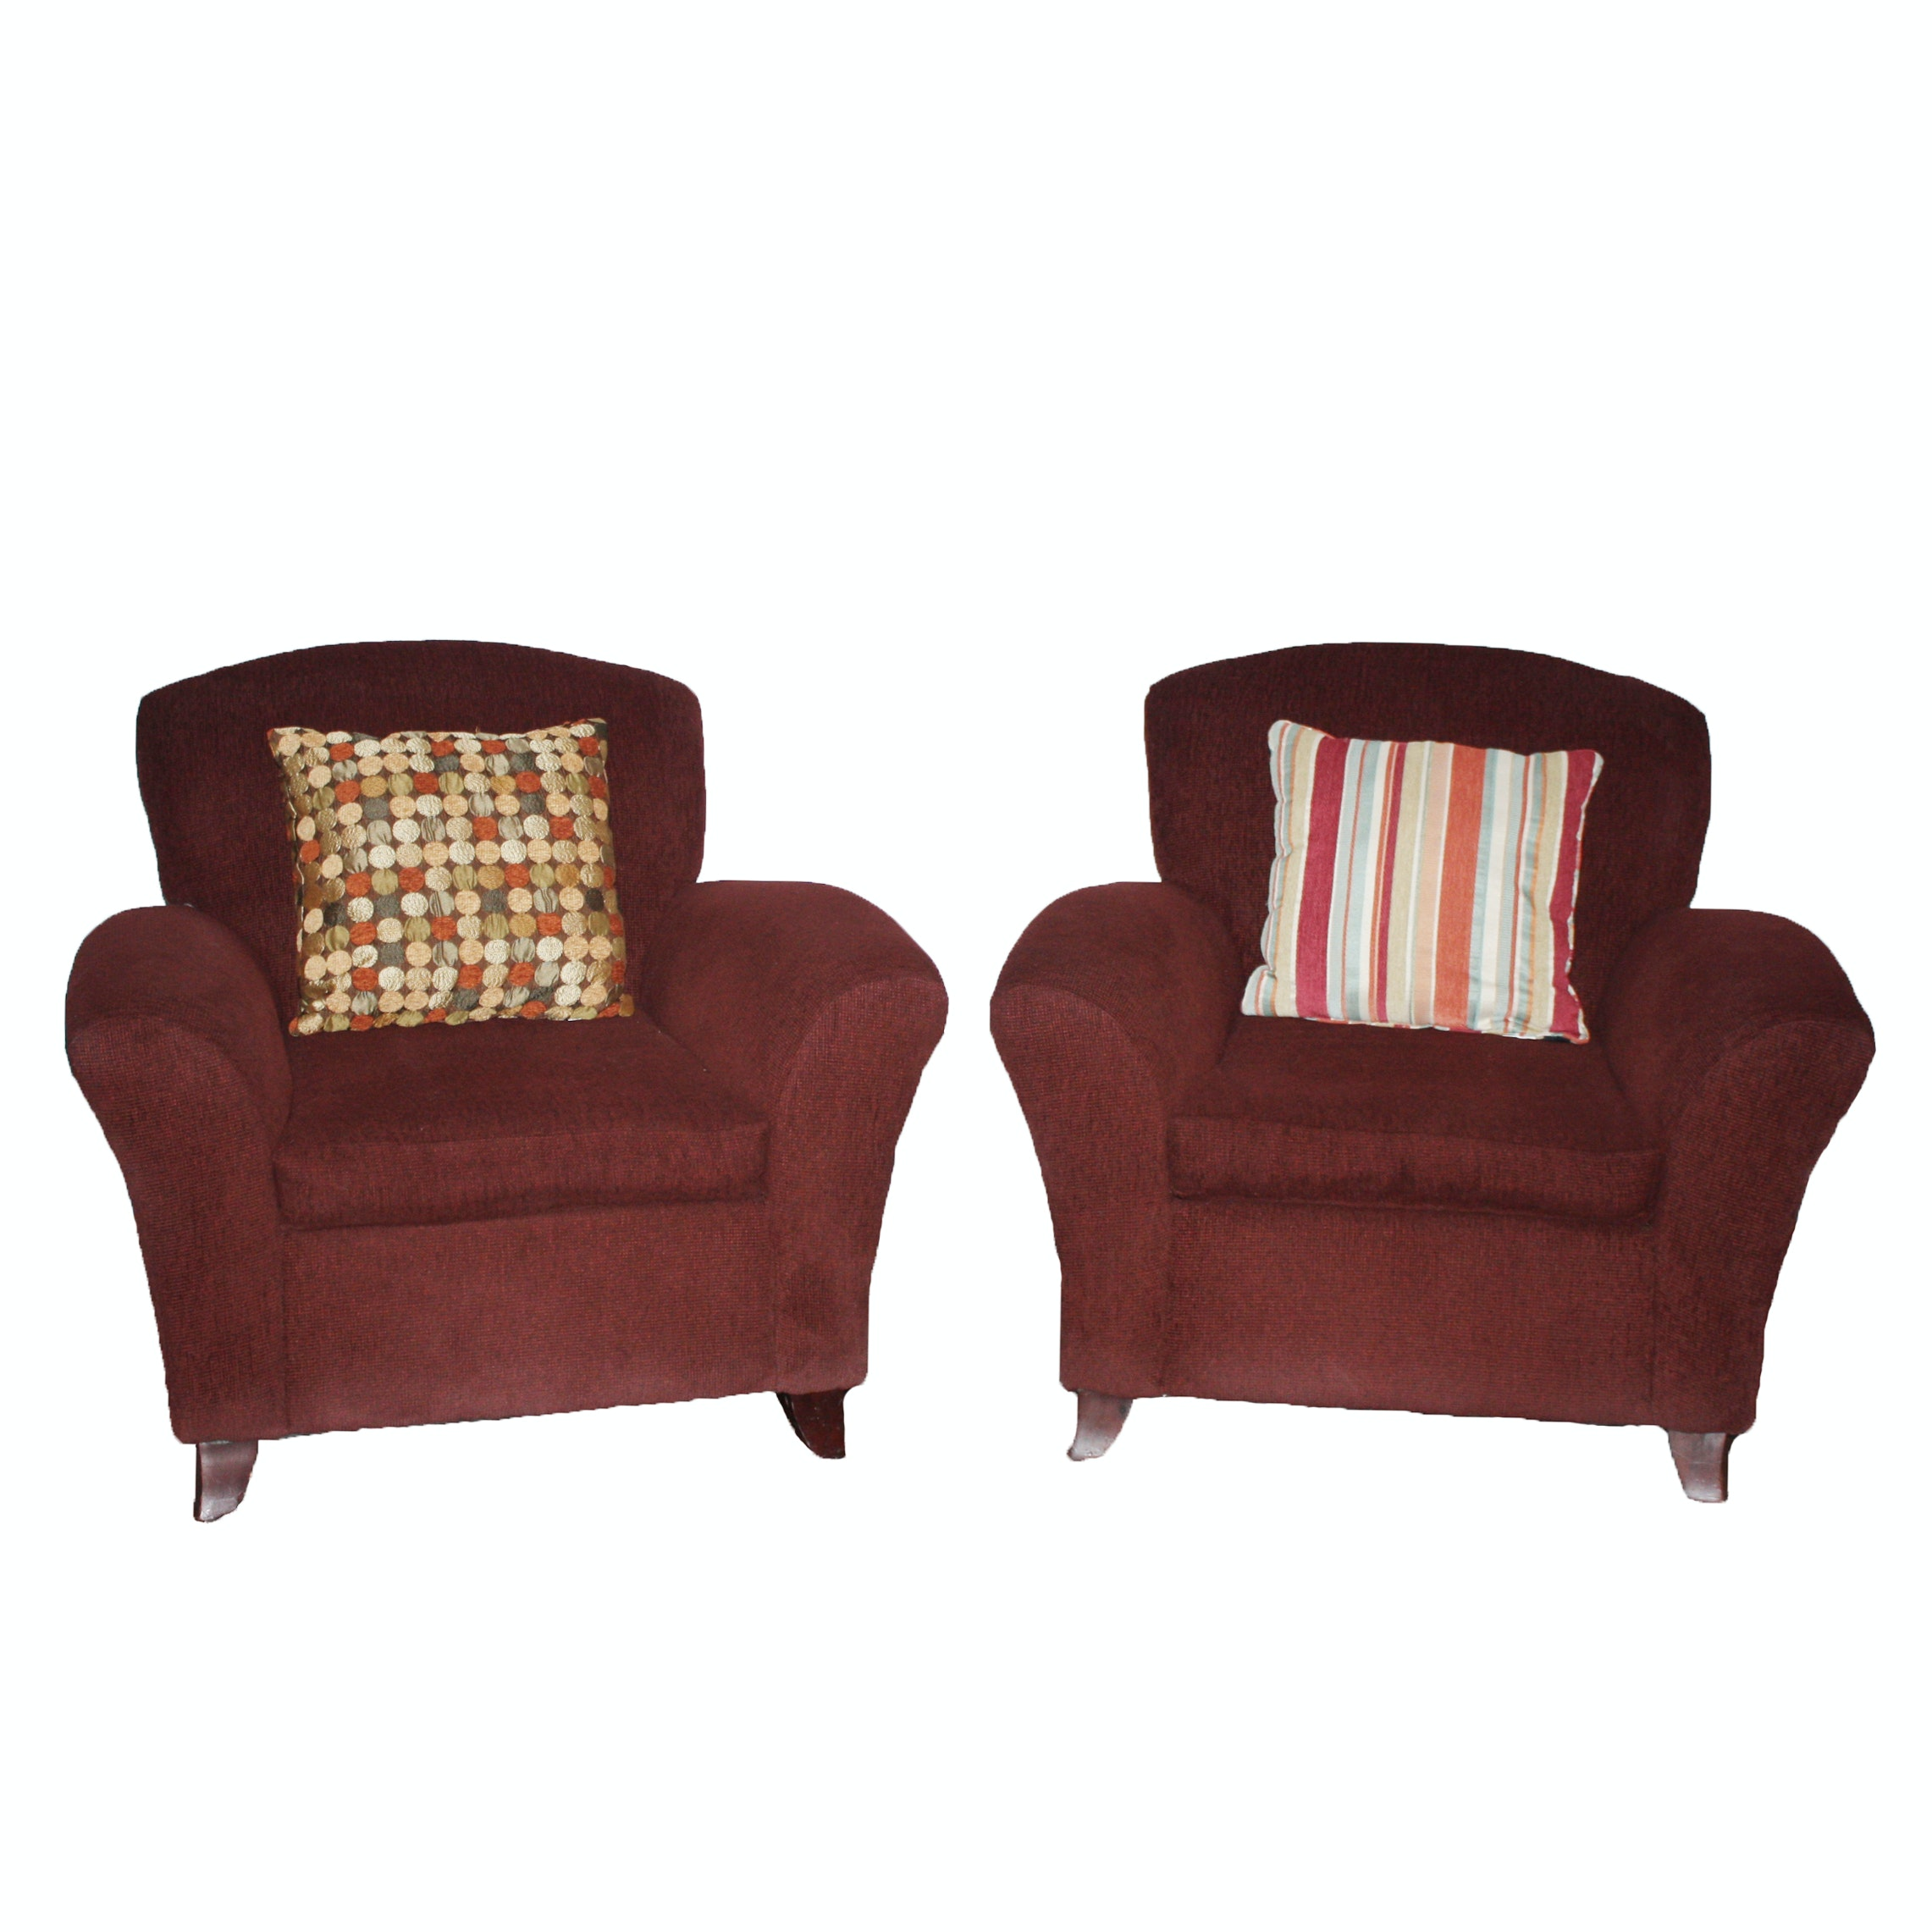 Pair of Upholstered Armchairs by Klaussner